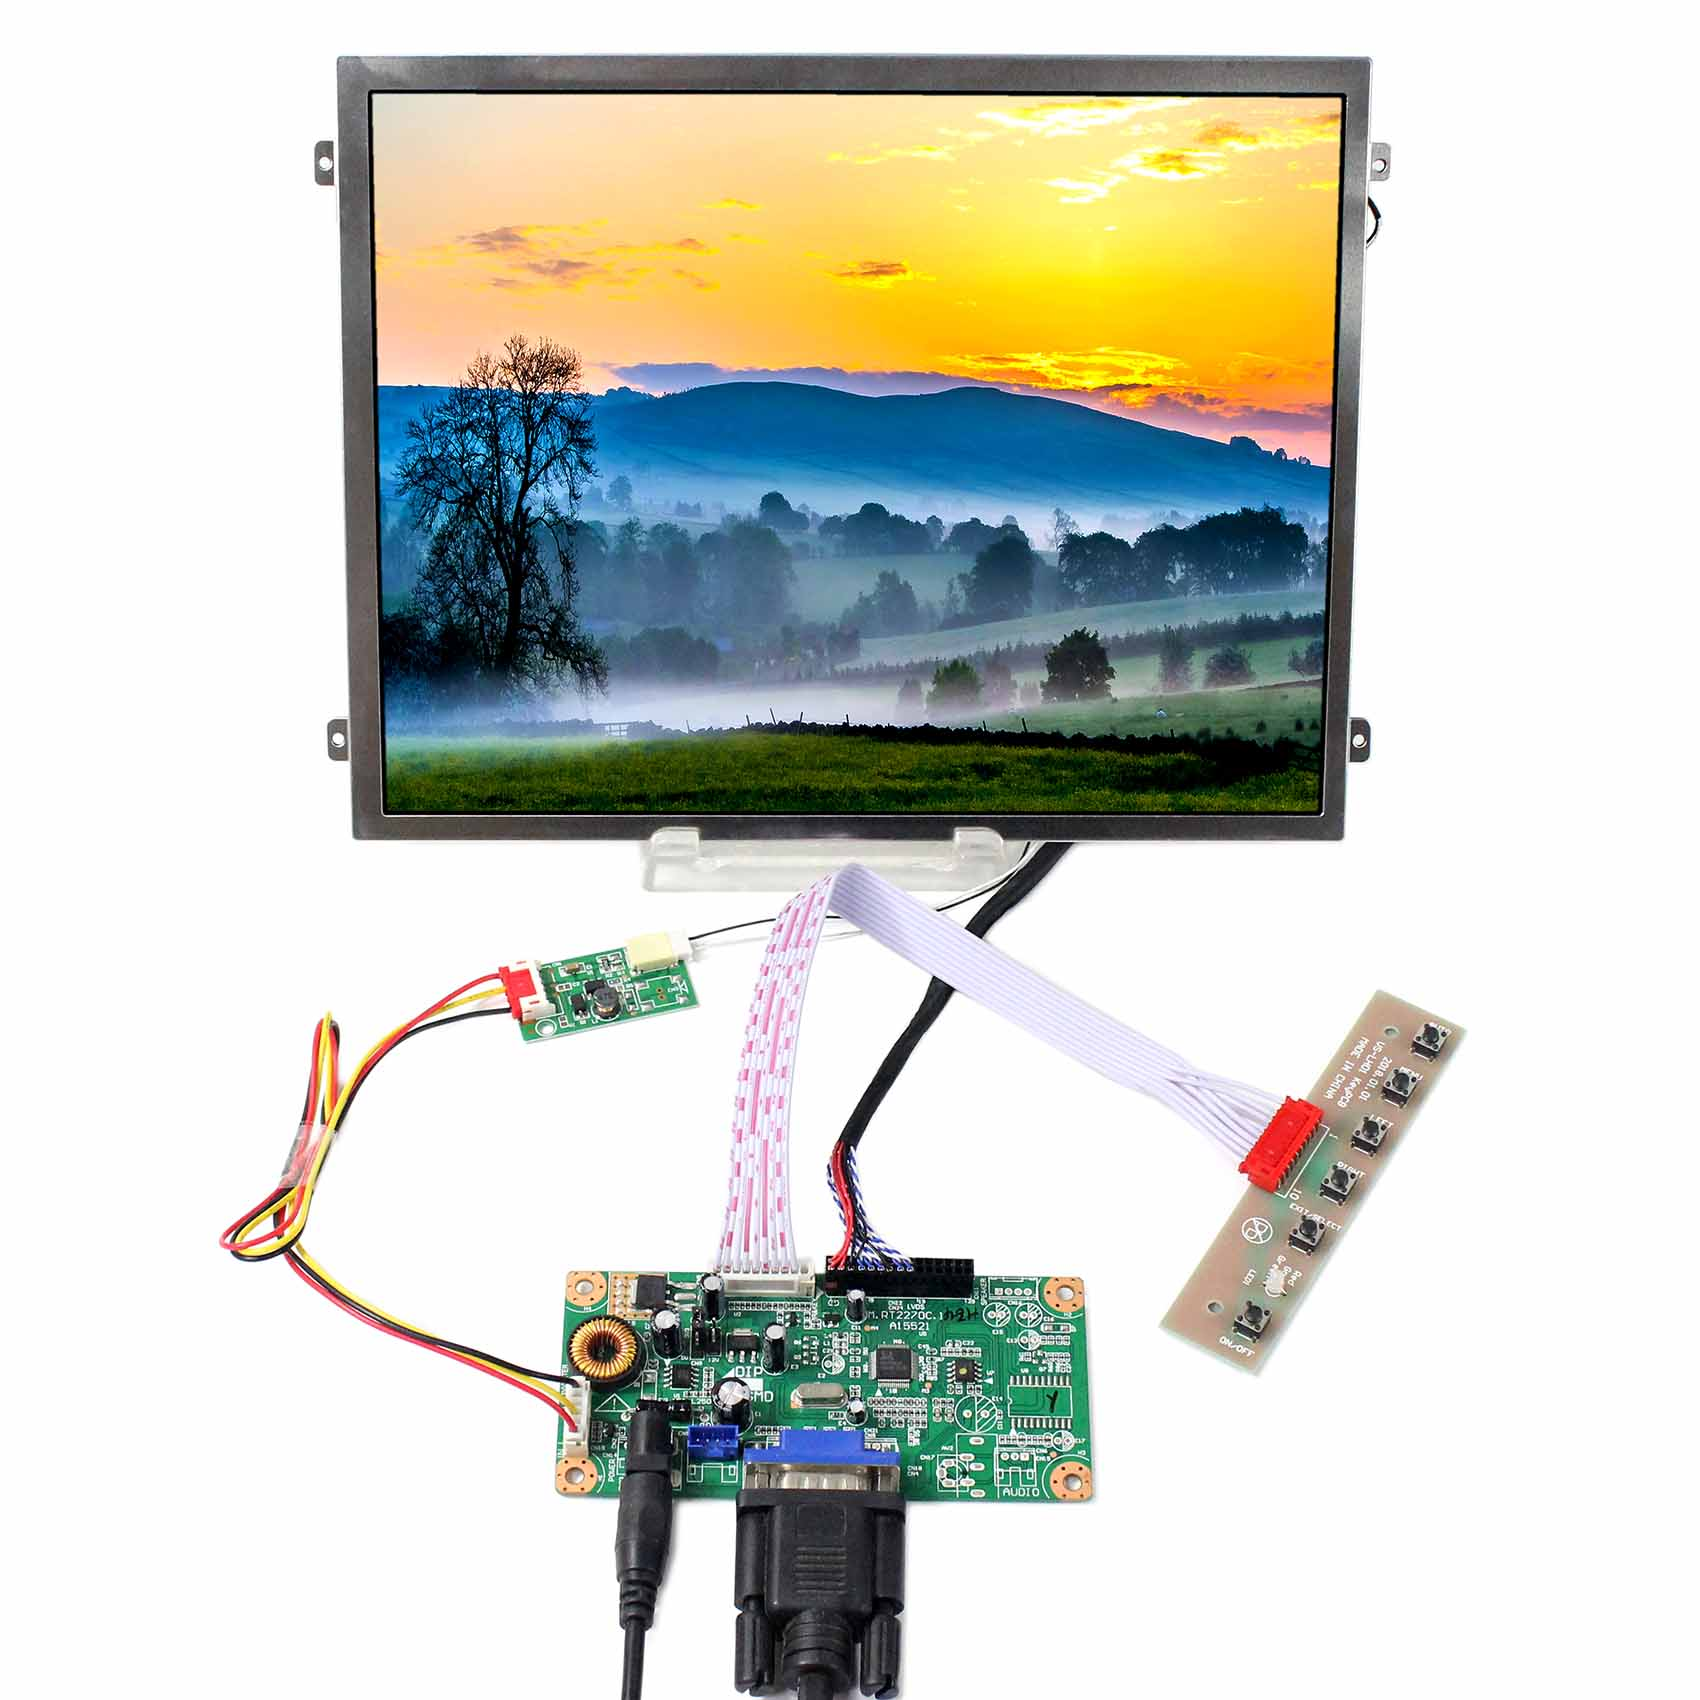 10.4inch VS140T-003A 1024x768 IPS LCD Screen With VGA LCD Controller Board